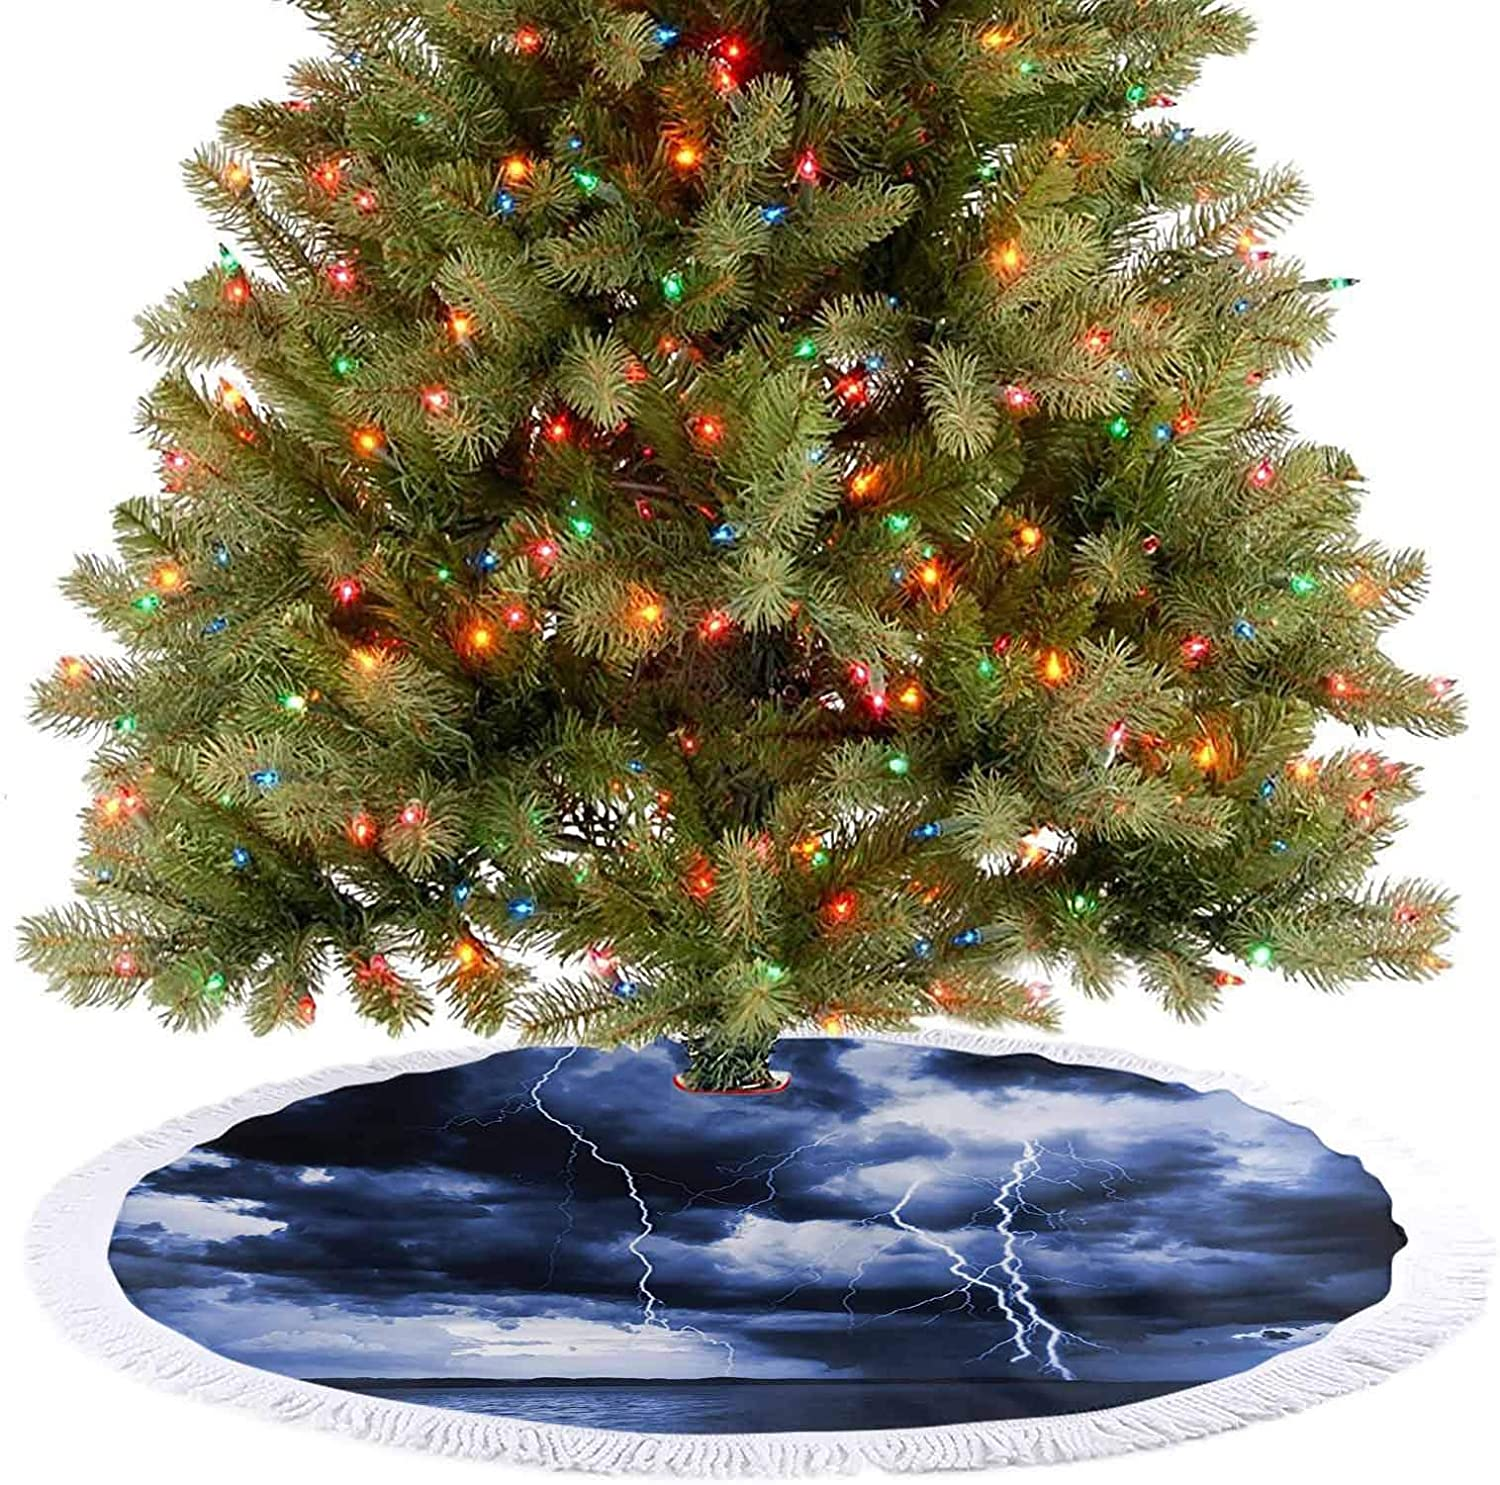 Christmas Tree Skirt Decorations Majestic Sky View with Huge Rain Clouds All Over The Sea and Xmas Decoration Holiday Ornaments Covers A Large Amount of Space Under The Tree - 48 Inch